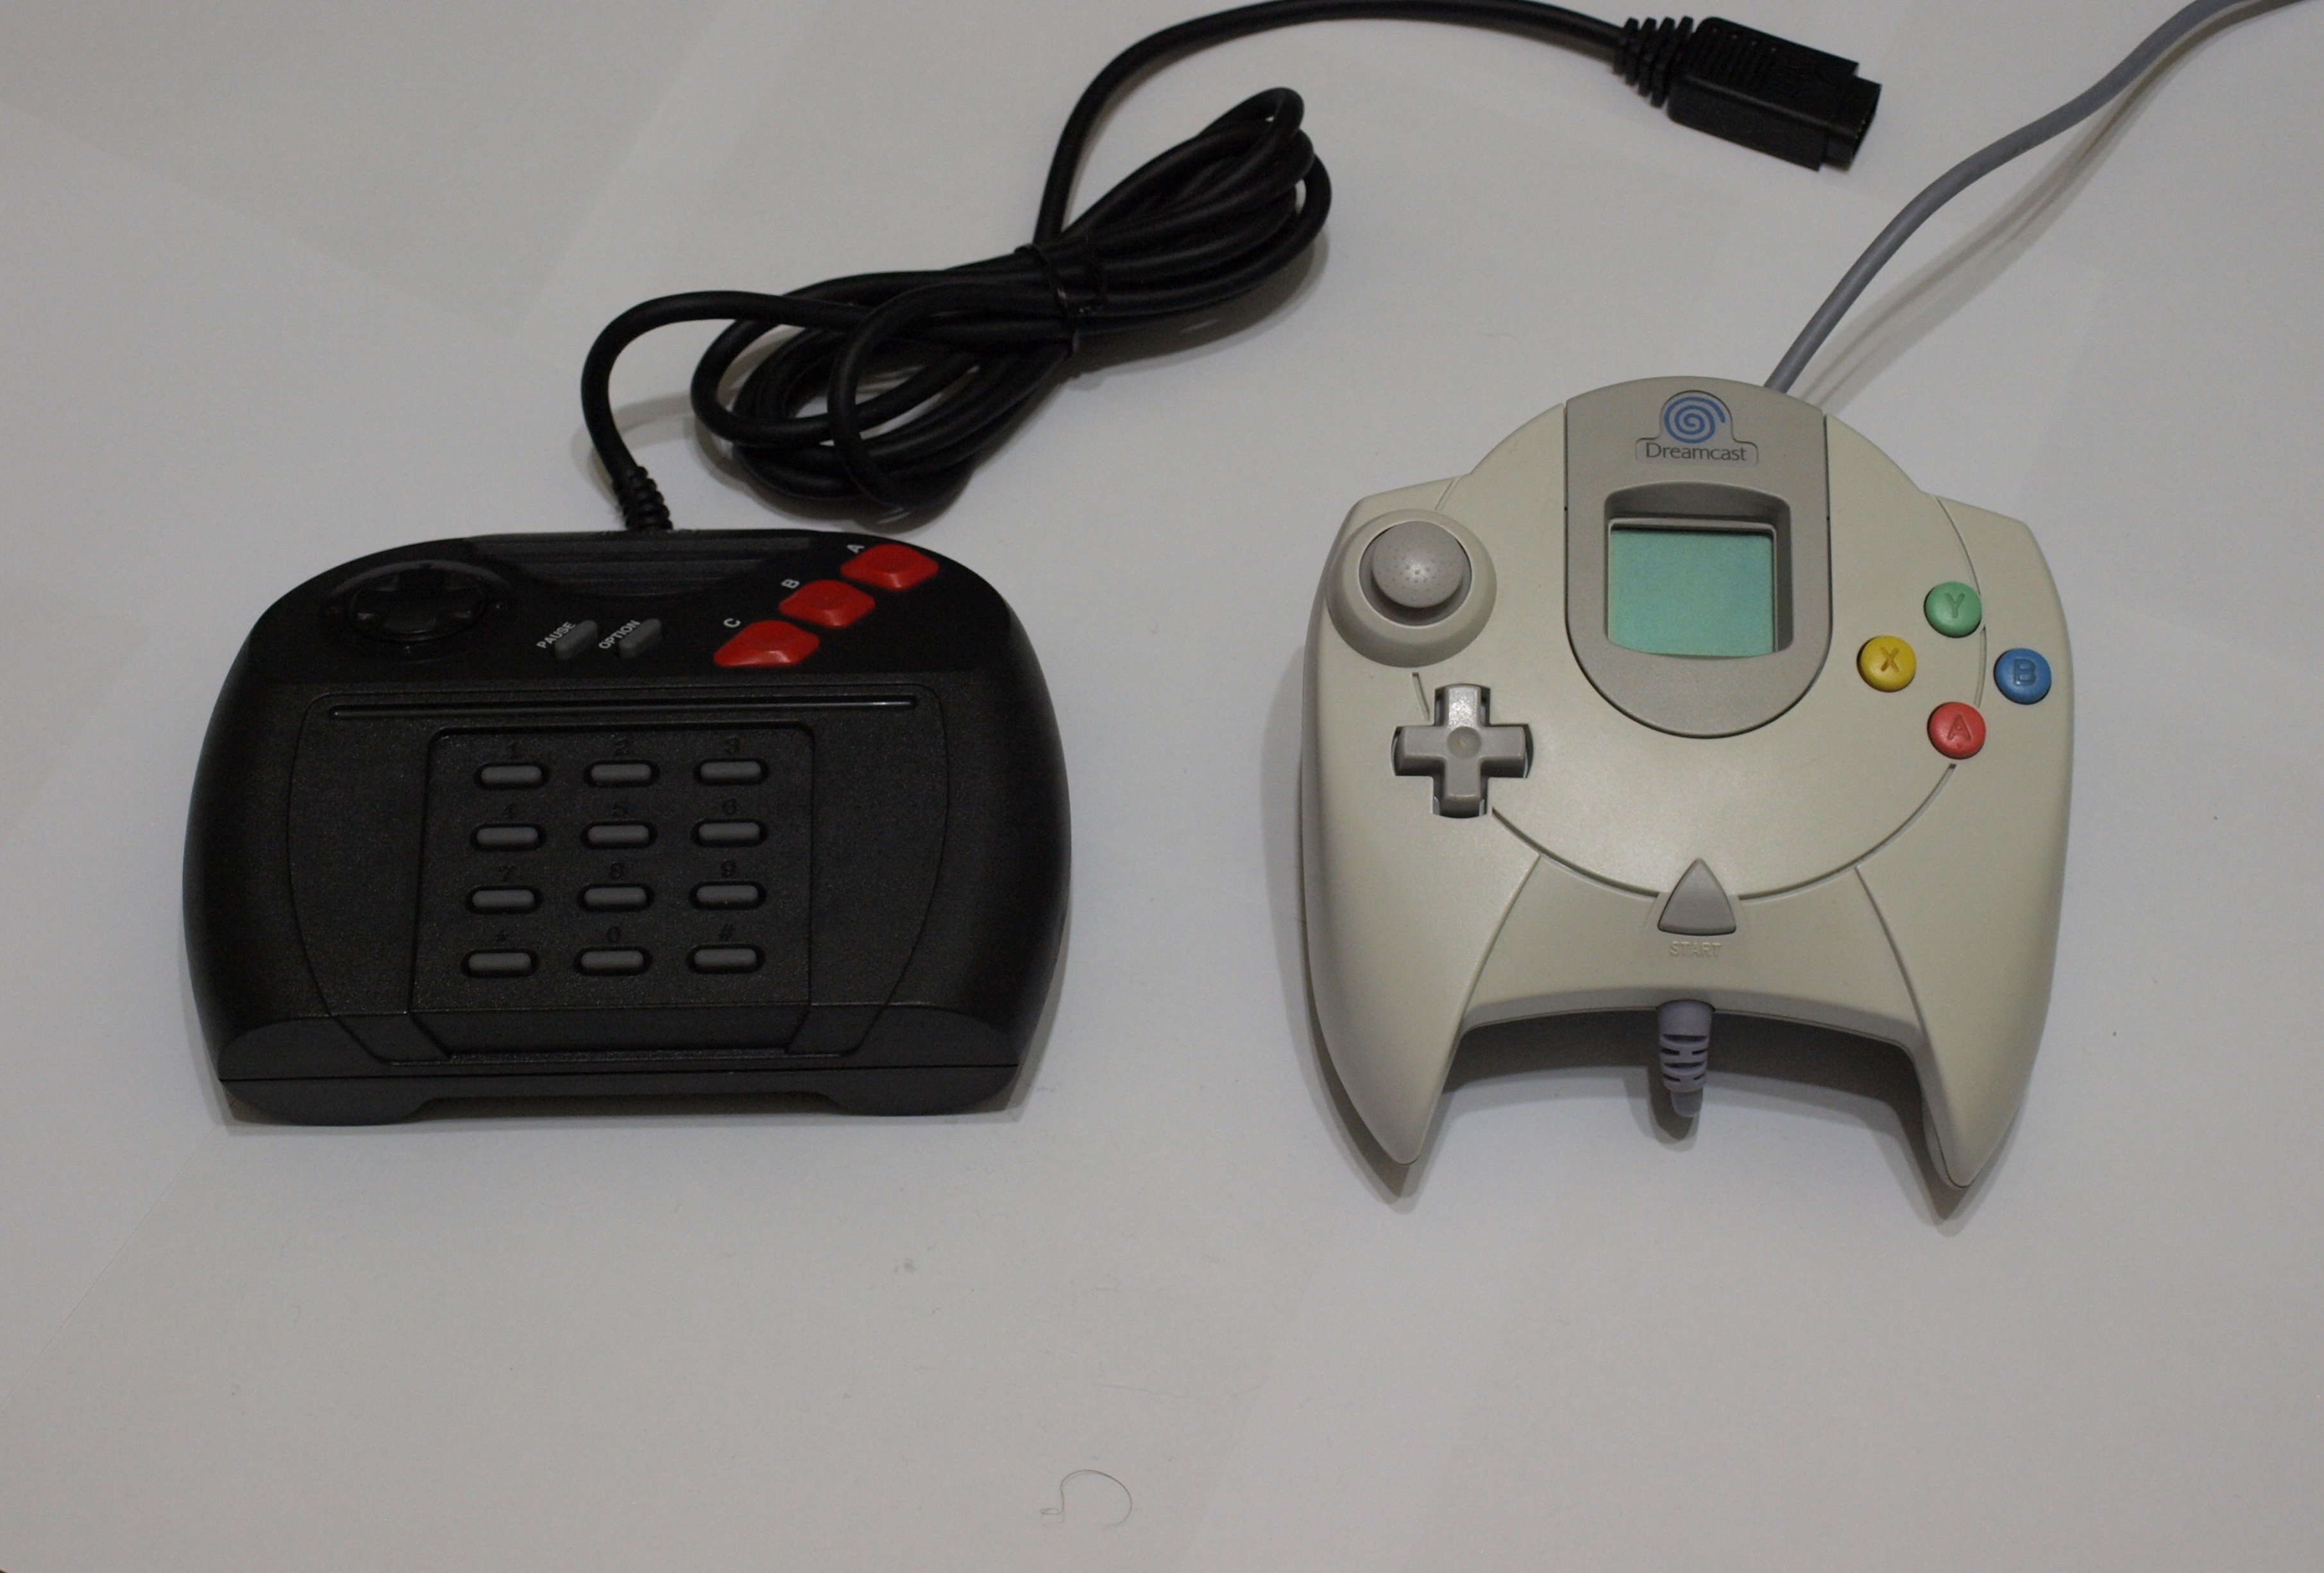 File Jaguar And Dreamcast Controllers Jpg Wikimedia Commons